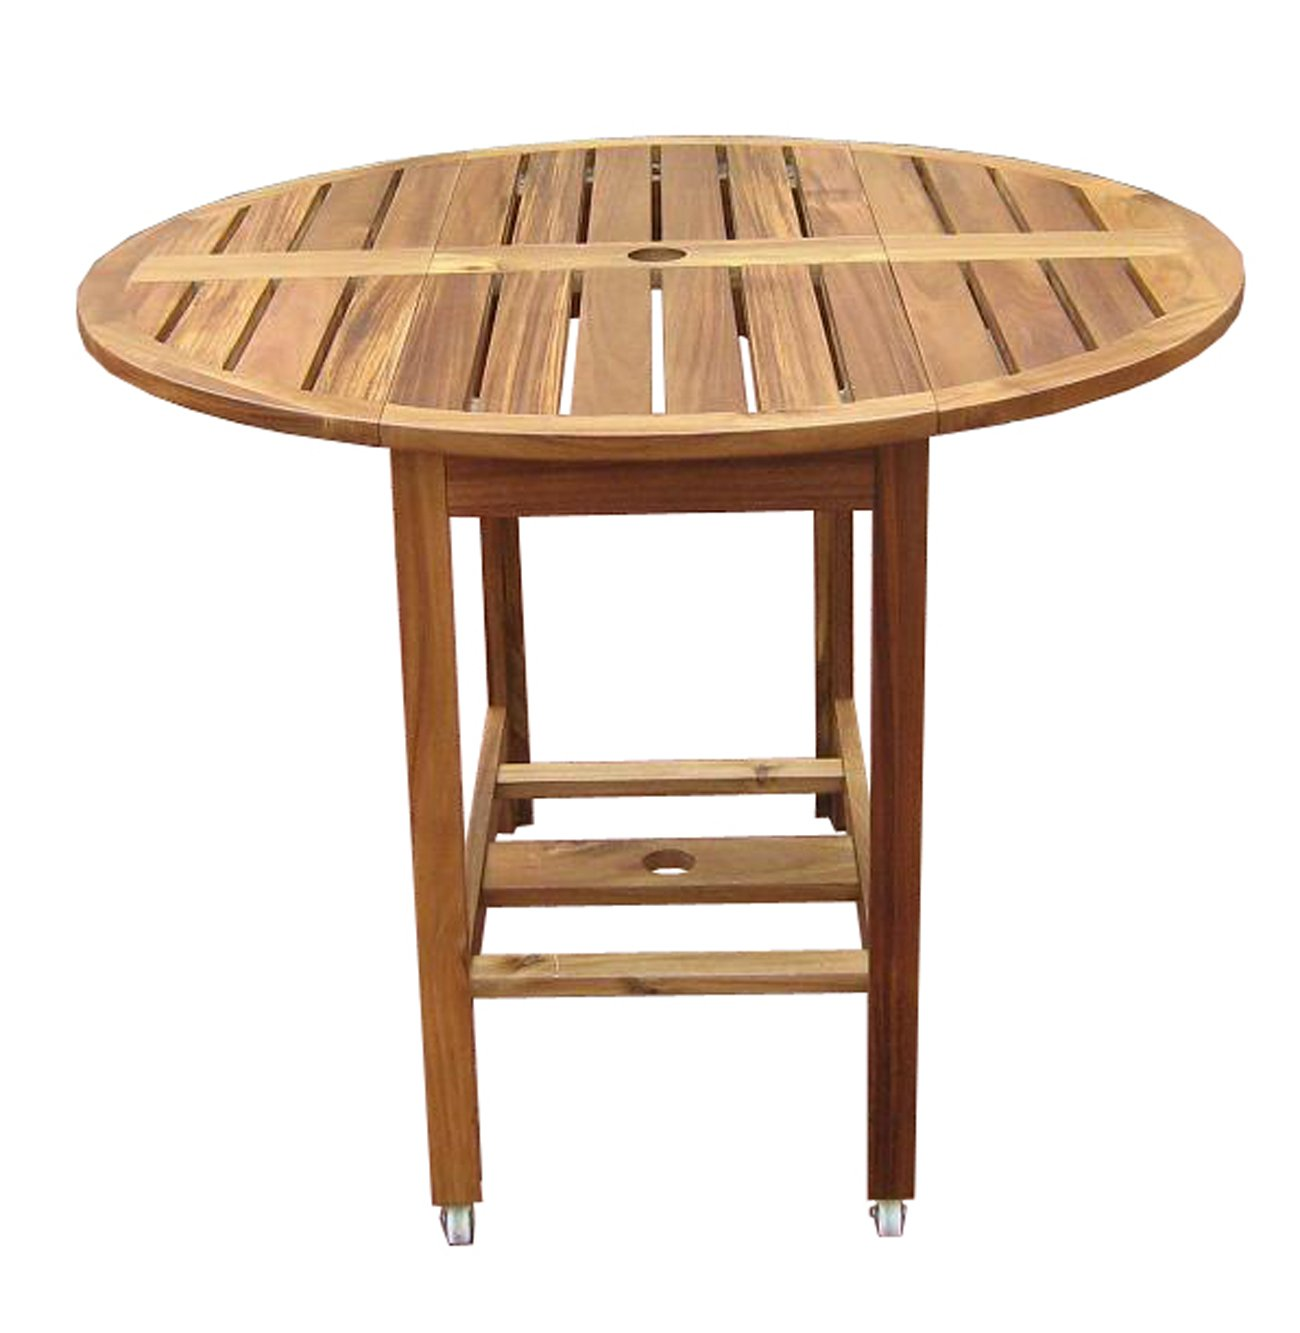 Outdoor round dining table - Amazon Com Merry Garden Acacia Folding Dining Table Folding Patio Tables Garden Outdoor